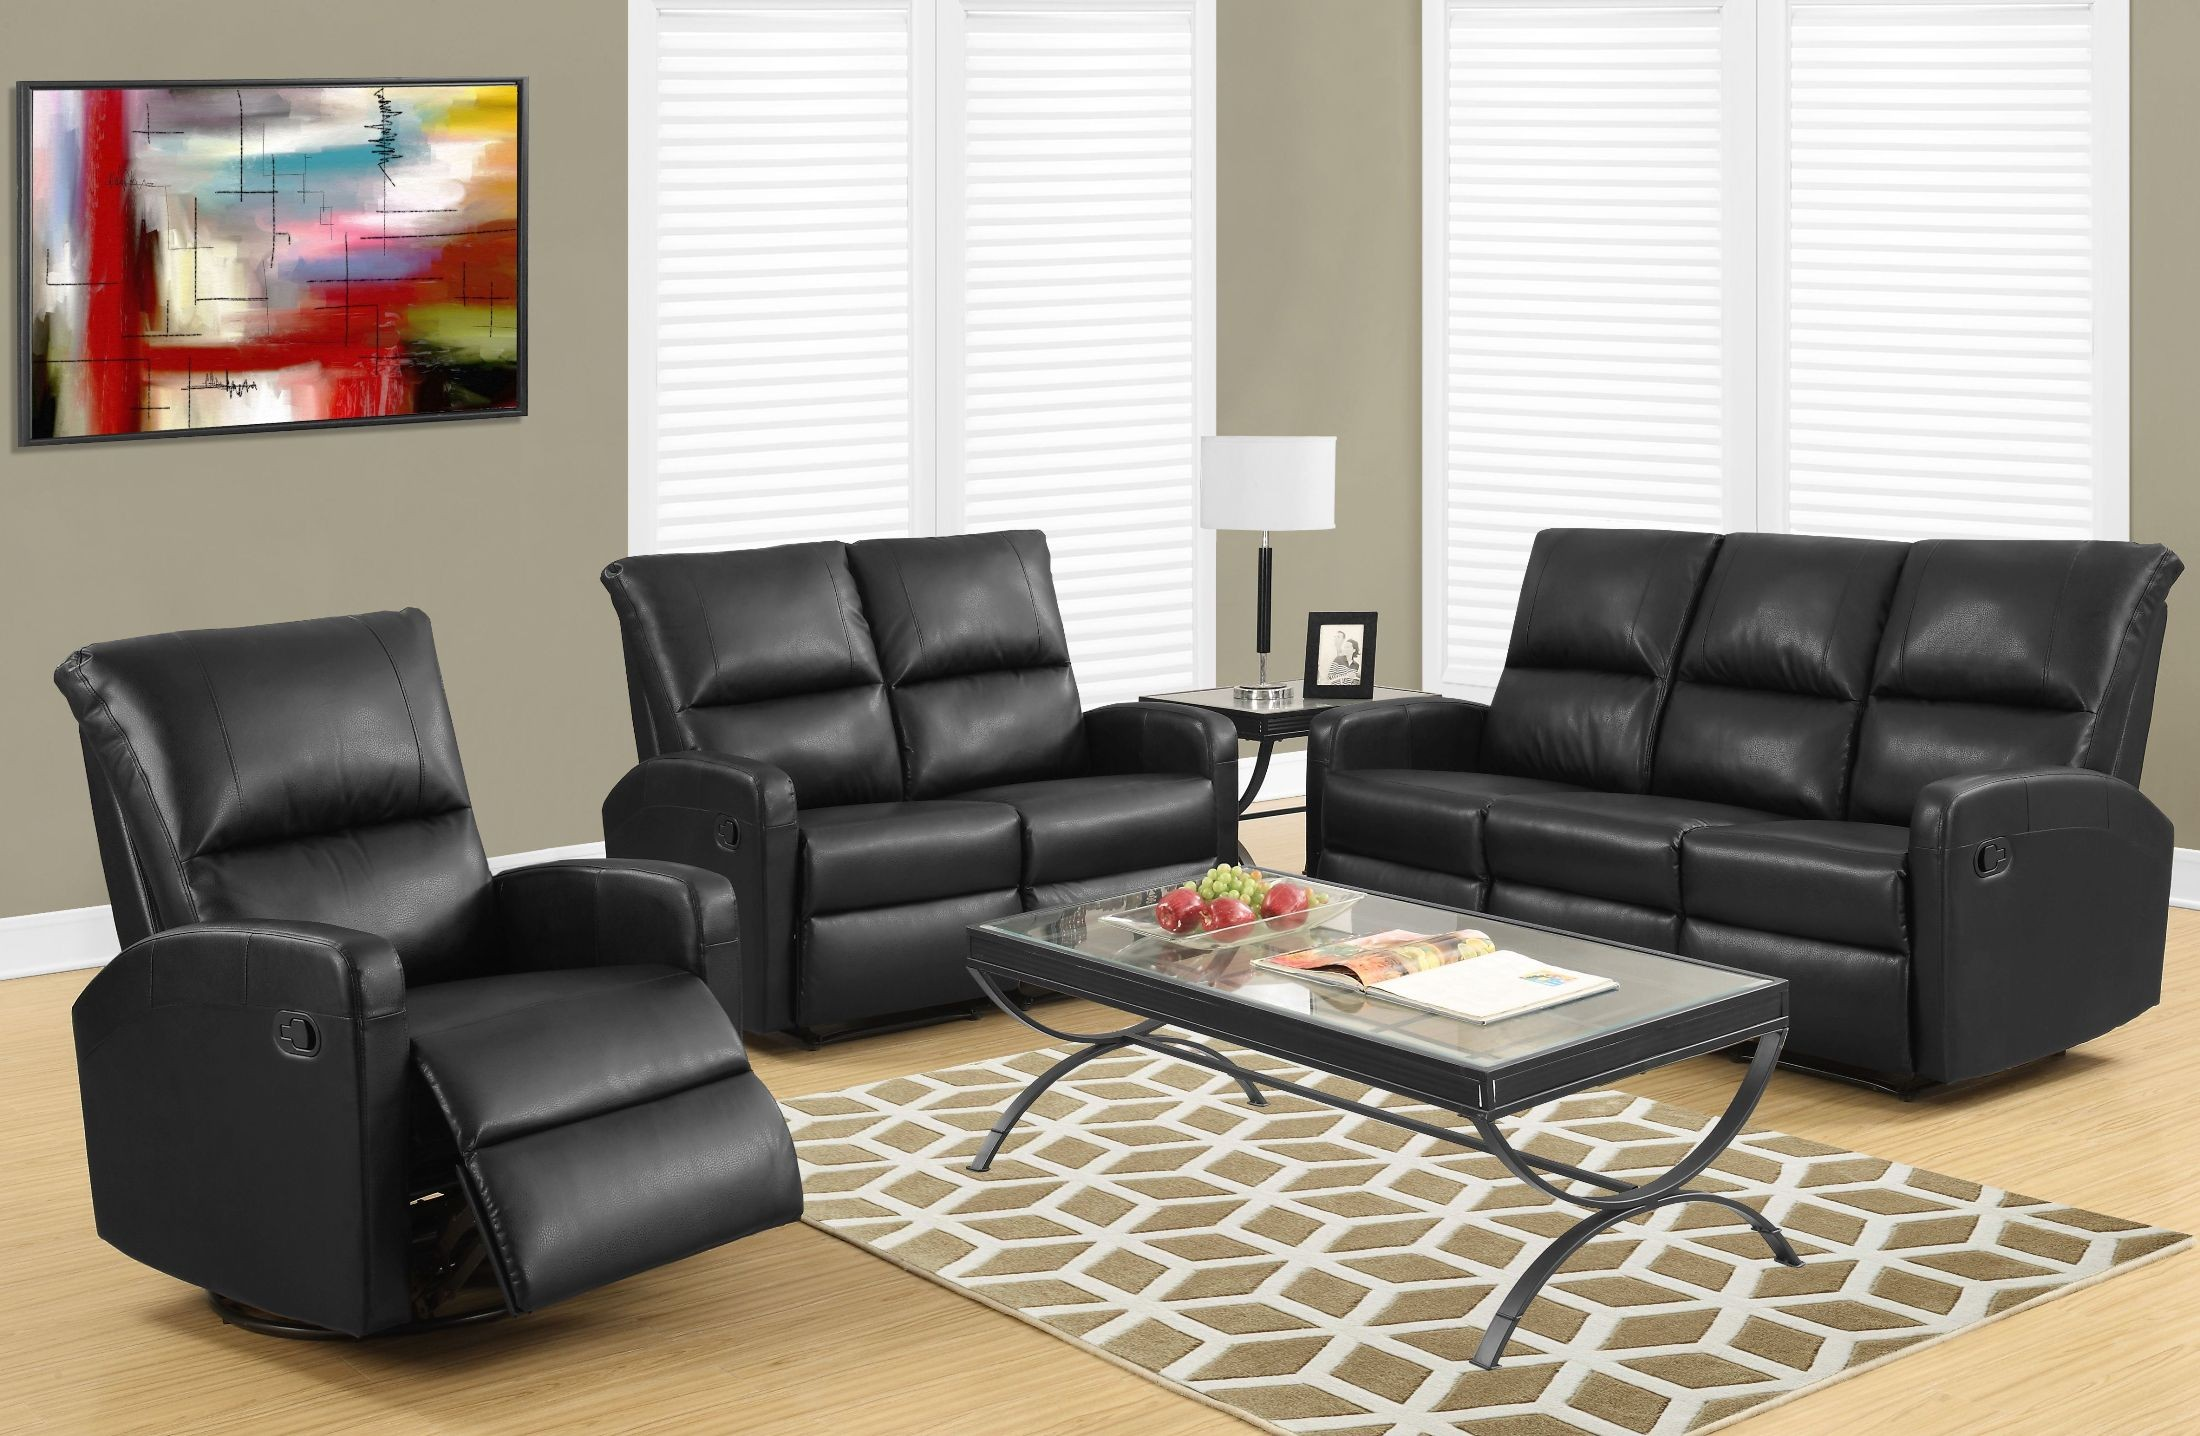 84bk 3 black bonded leather reclining living room set from monarch coleman furniture. Black Bedroom Furniture Sets. Home Design Ideas